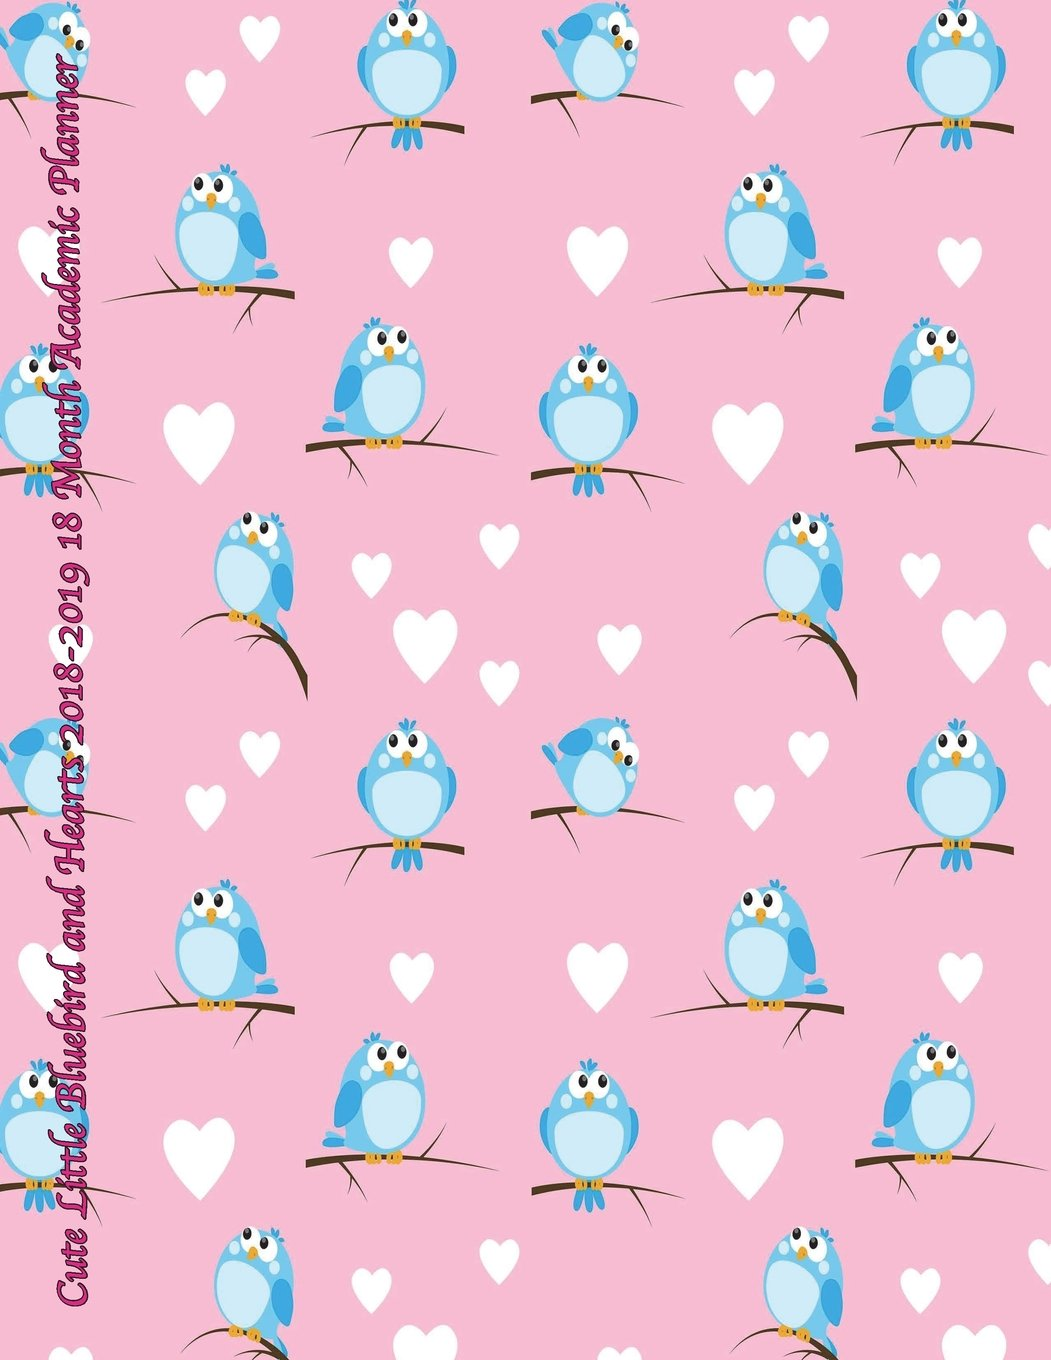 Cute Little Bluebird and Hearts 2018-2019 18 Month Academic Planner: July 2018 To December 2019 Weekly and Monthly Large 8.5x11 Organizer with ... Motivational Quotes Planners) (Volume 36) pdf epub